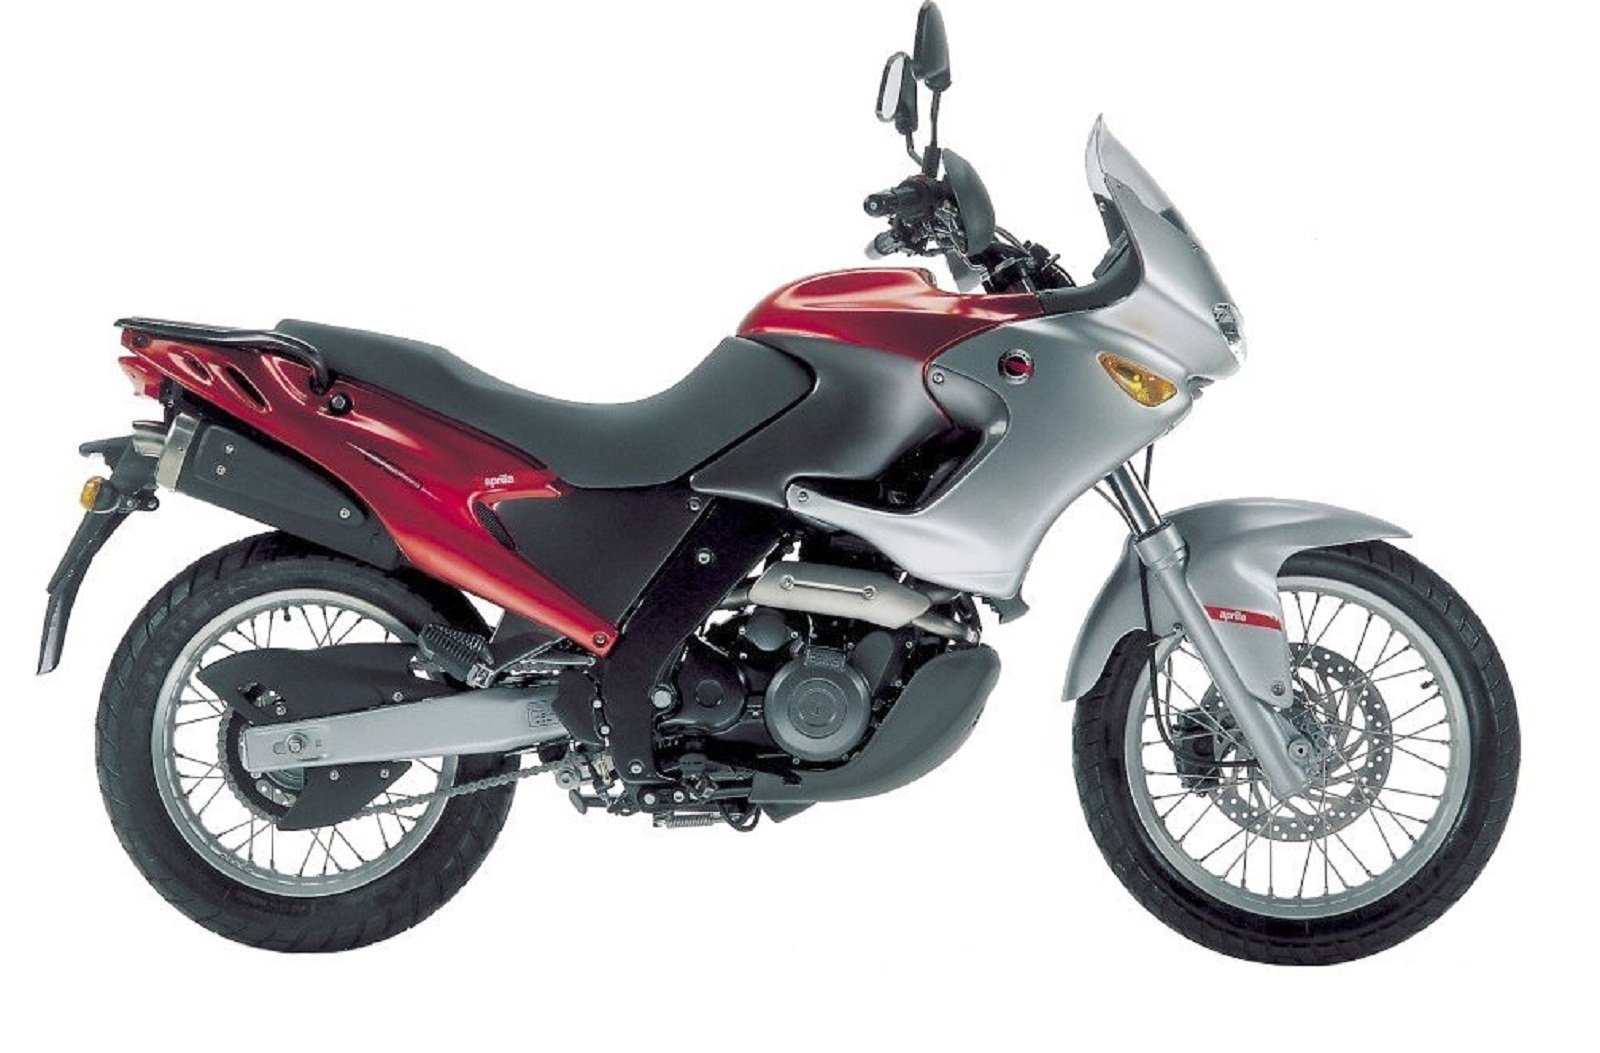 2012 aprilia pegaso 650 picture 438400 motorcycle review top speed. Black Bedroom Furniture Sets. Home Design Ideas